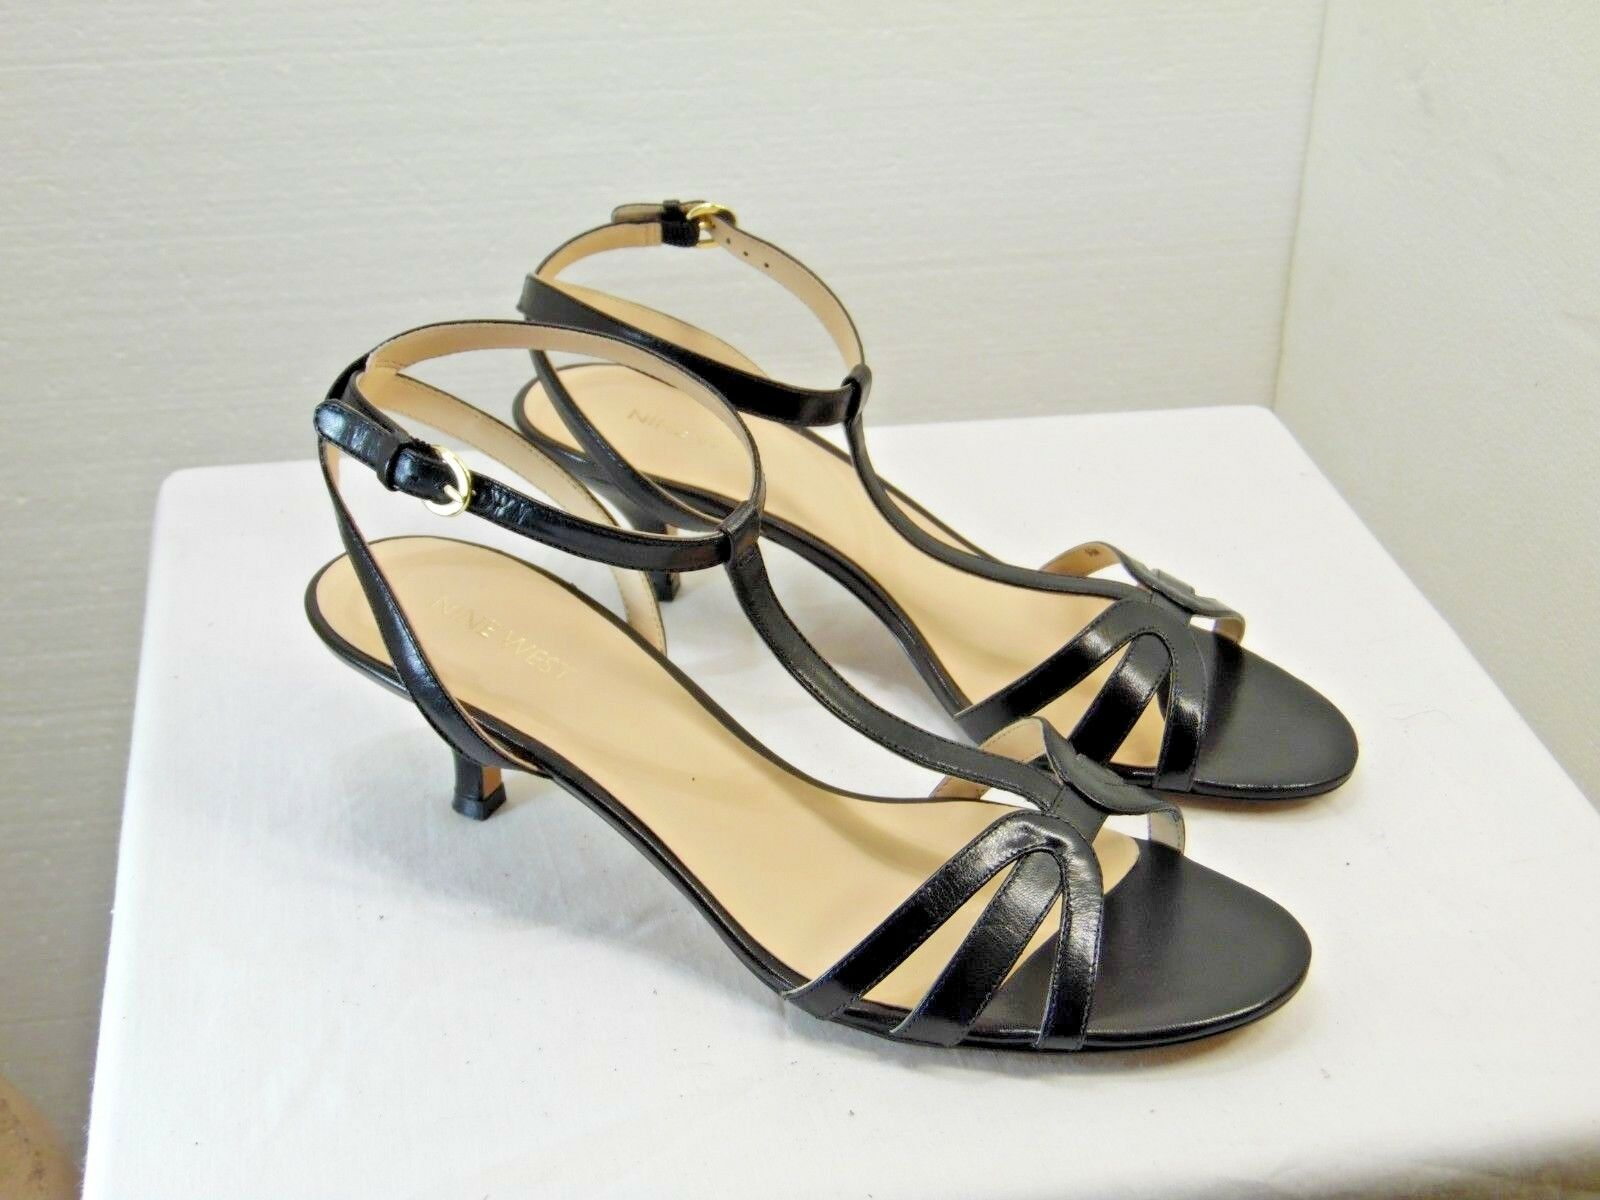 NINE WEST brand women low heels size great 9.5 leather black color great size condition YM1 1446f5